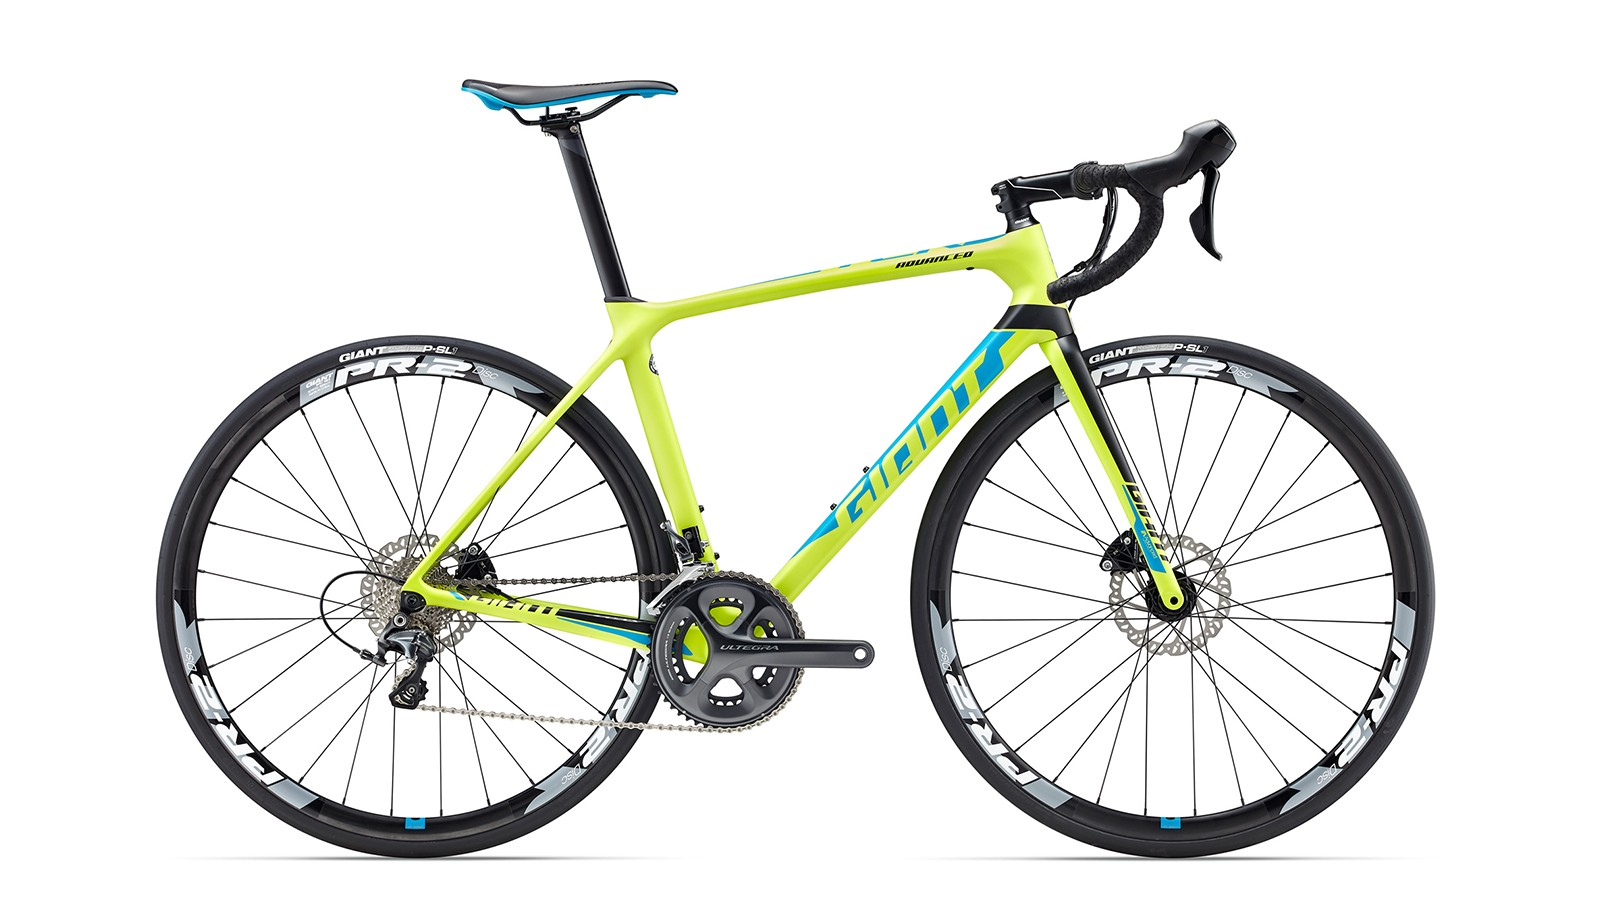 The TCR Advanced Disc series has the same composite frame as the TCR Advanced Pro Disc, but with a composite fork and hybrid OverDrive steerer tube